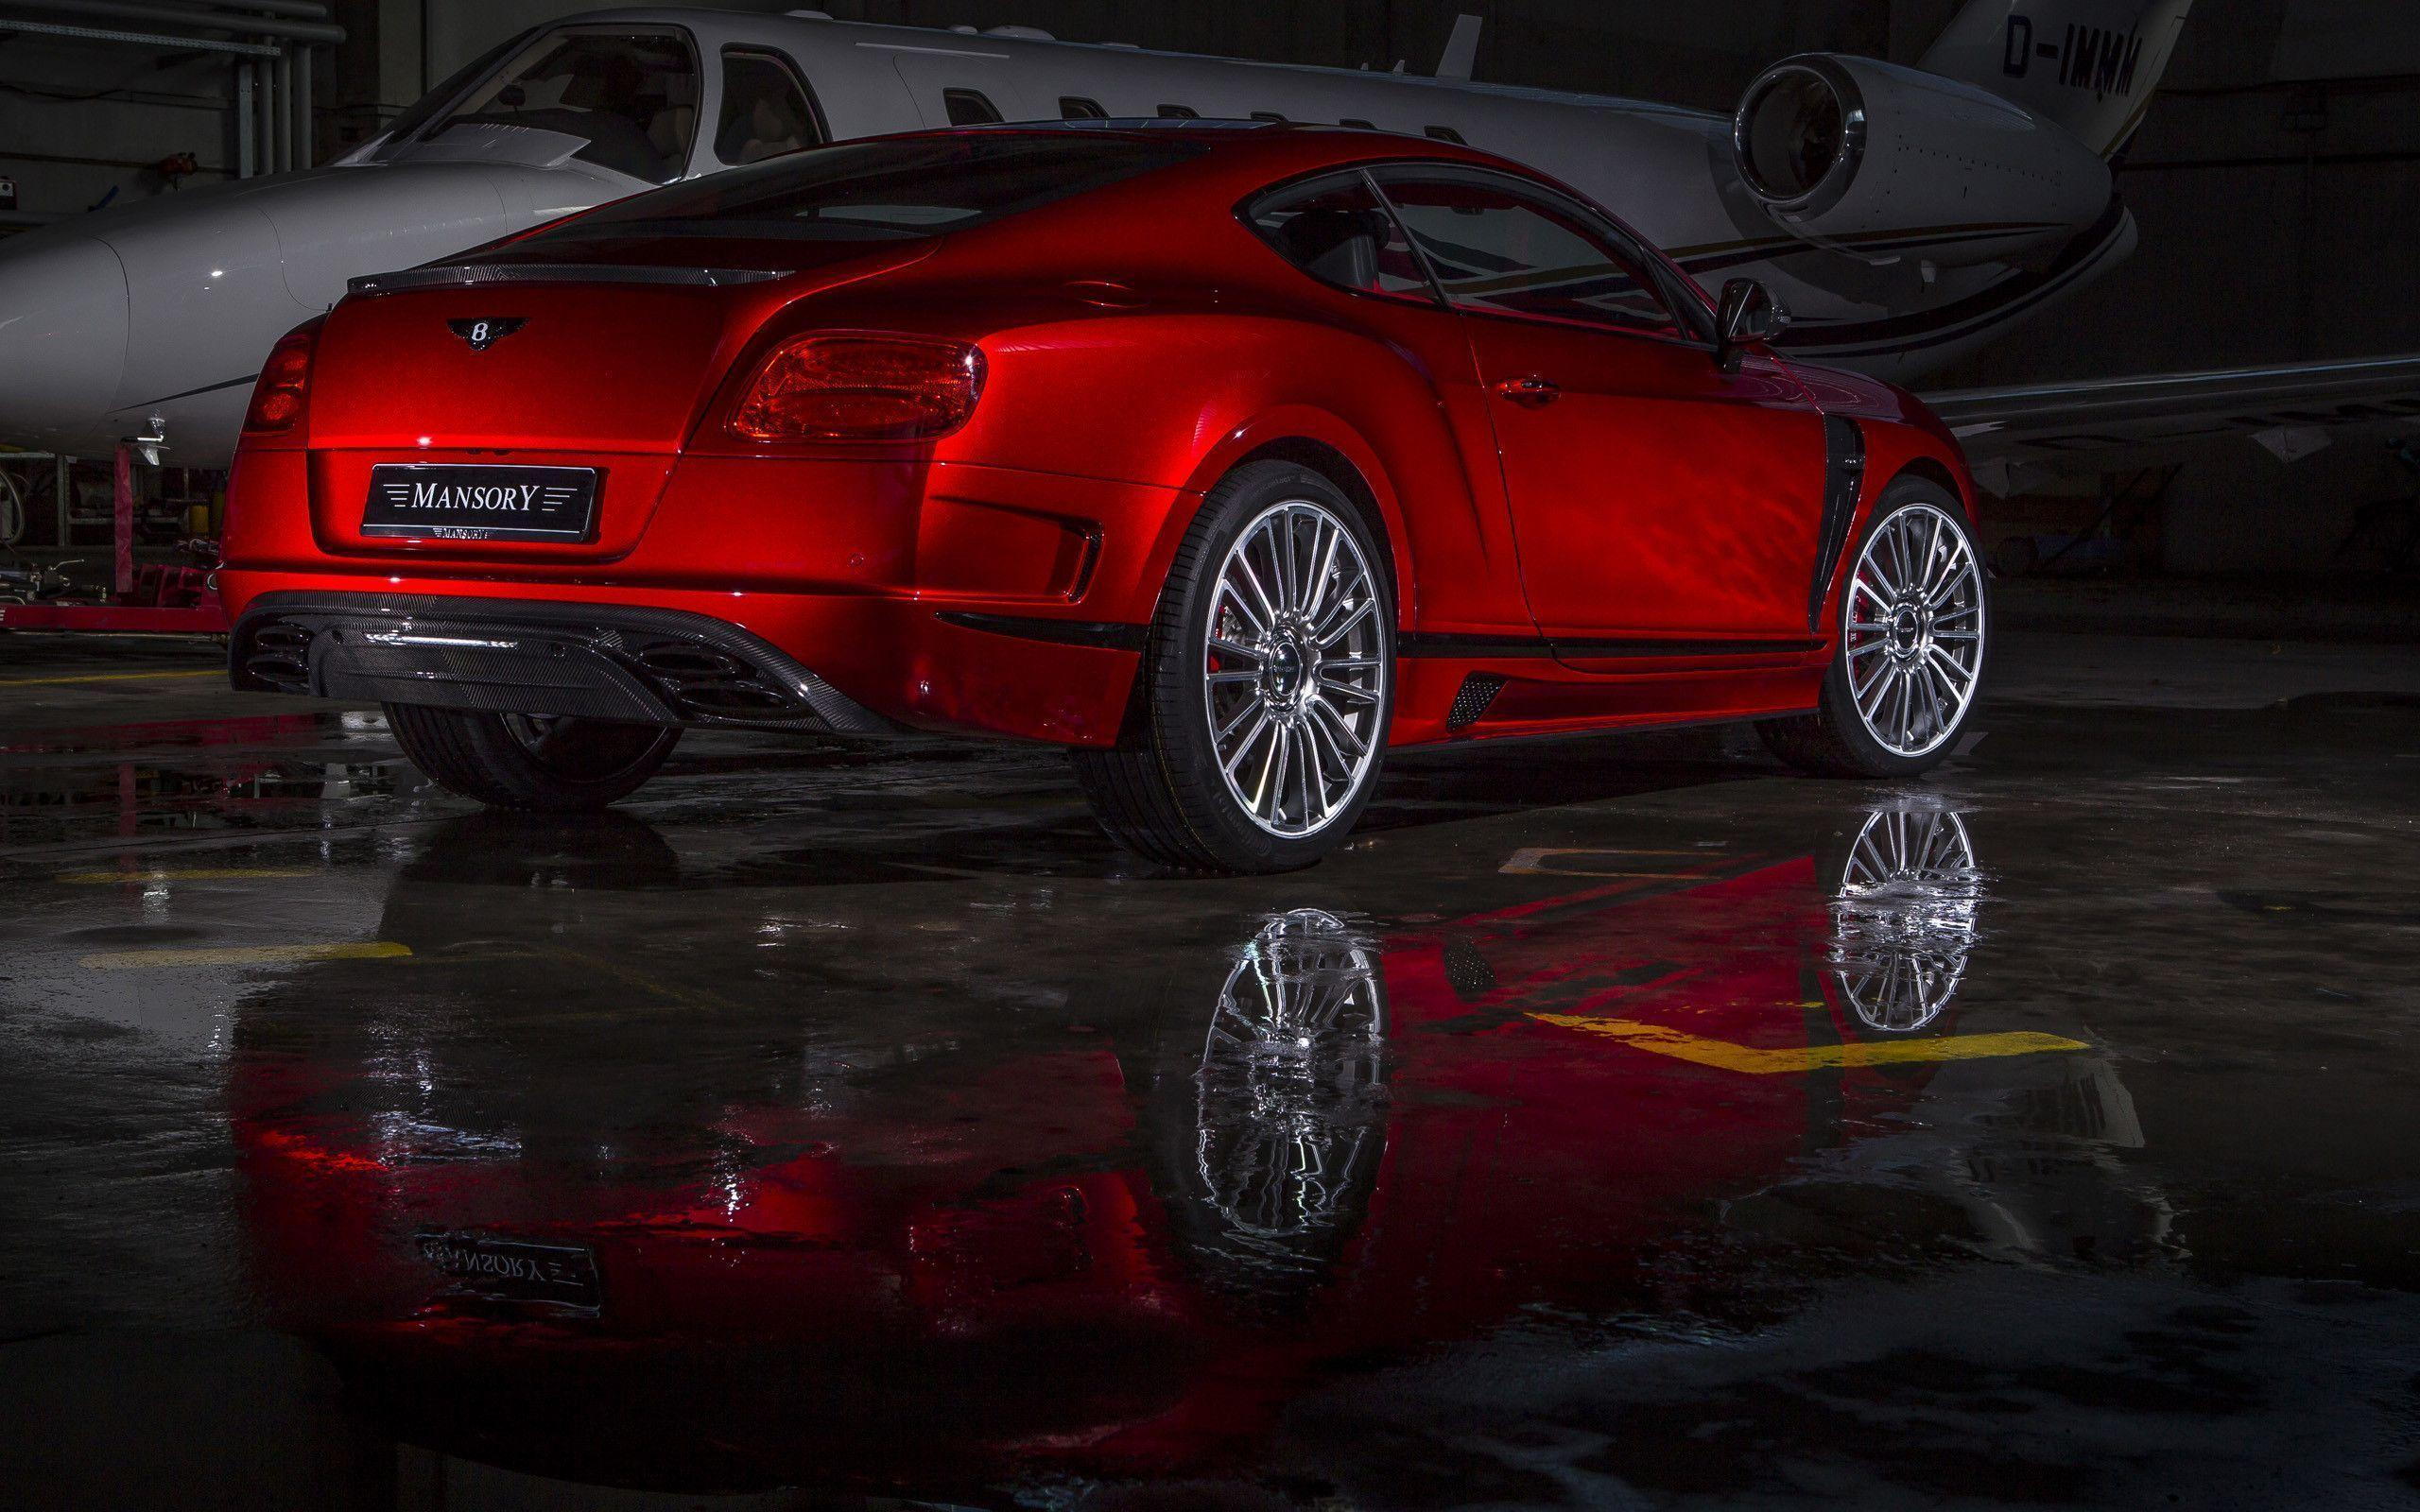 2013 Mansory Bentley Continental GT Sanguis 2 Wallpapers